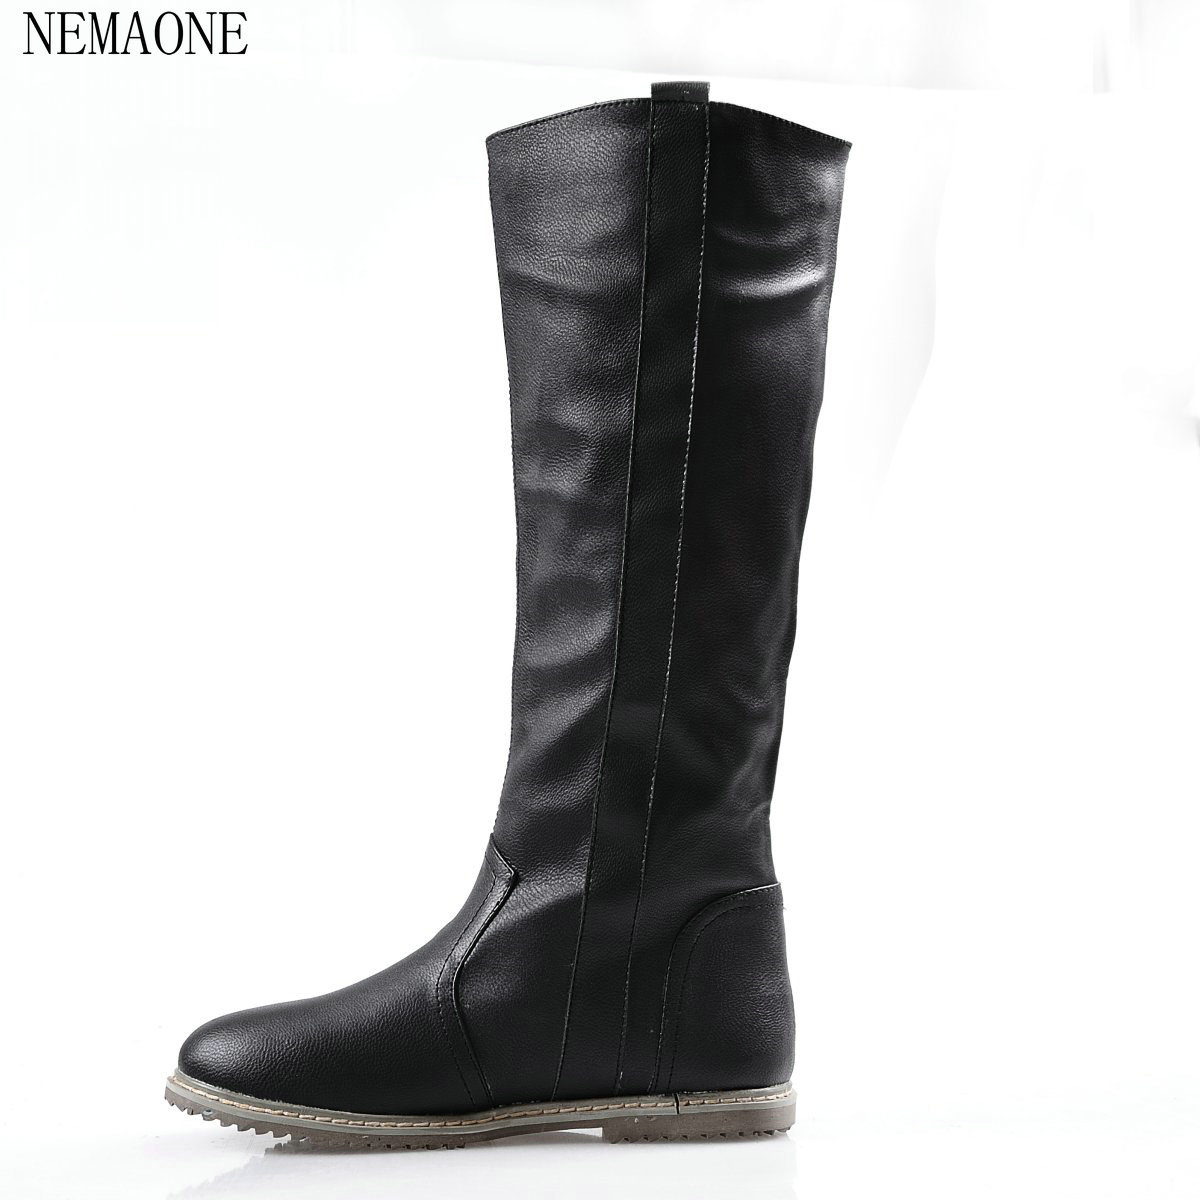 NEMAONE New arrival Russia keep warm snow boots fashion platform fur over the knee boots warm winter boots for women shoes